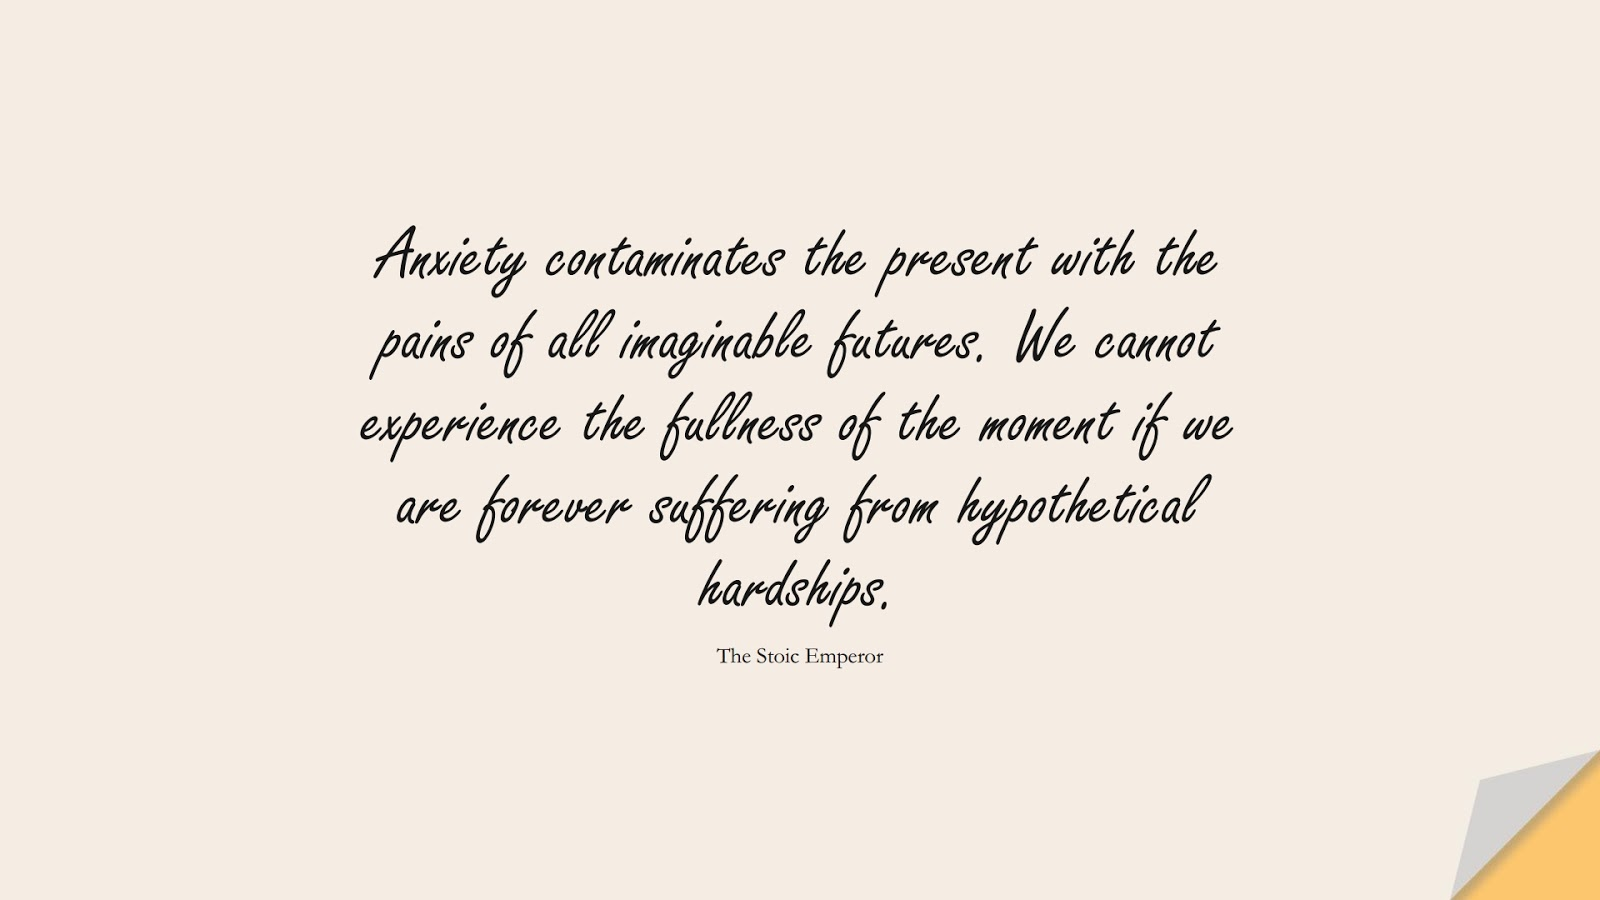 Anxiety contaminates the present with the pains of all imaginable futures. We cannot experience the fullness of the moment if we are forever suffering from hypothetical hardships. (The Stoic Emperor);  #DepressionQuotes